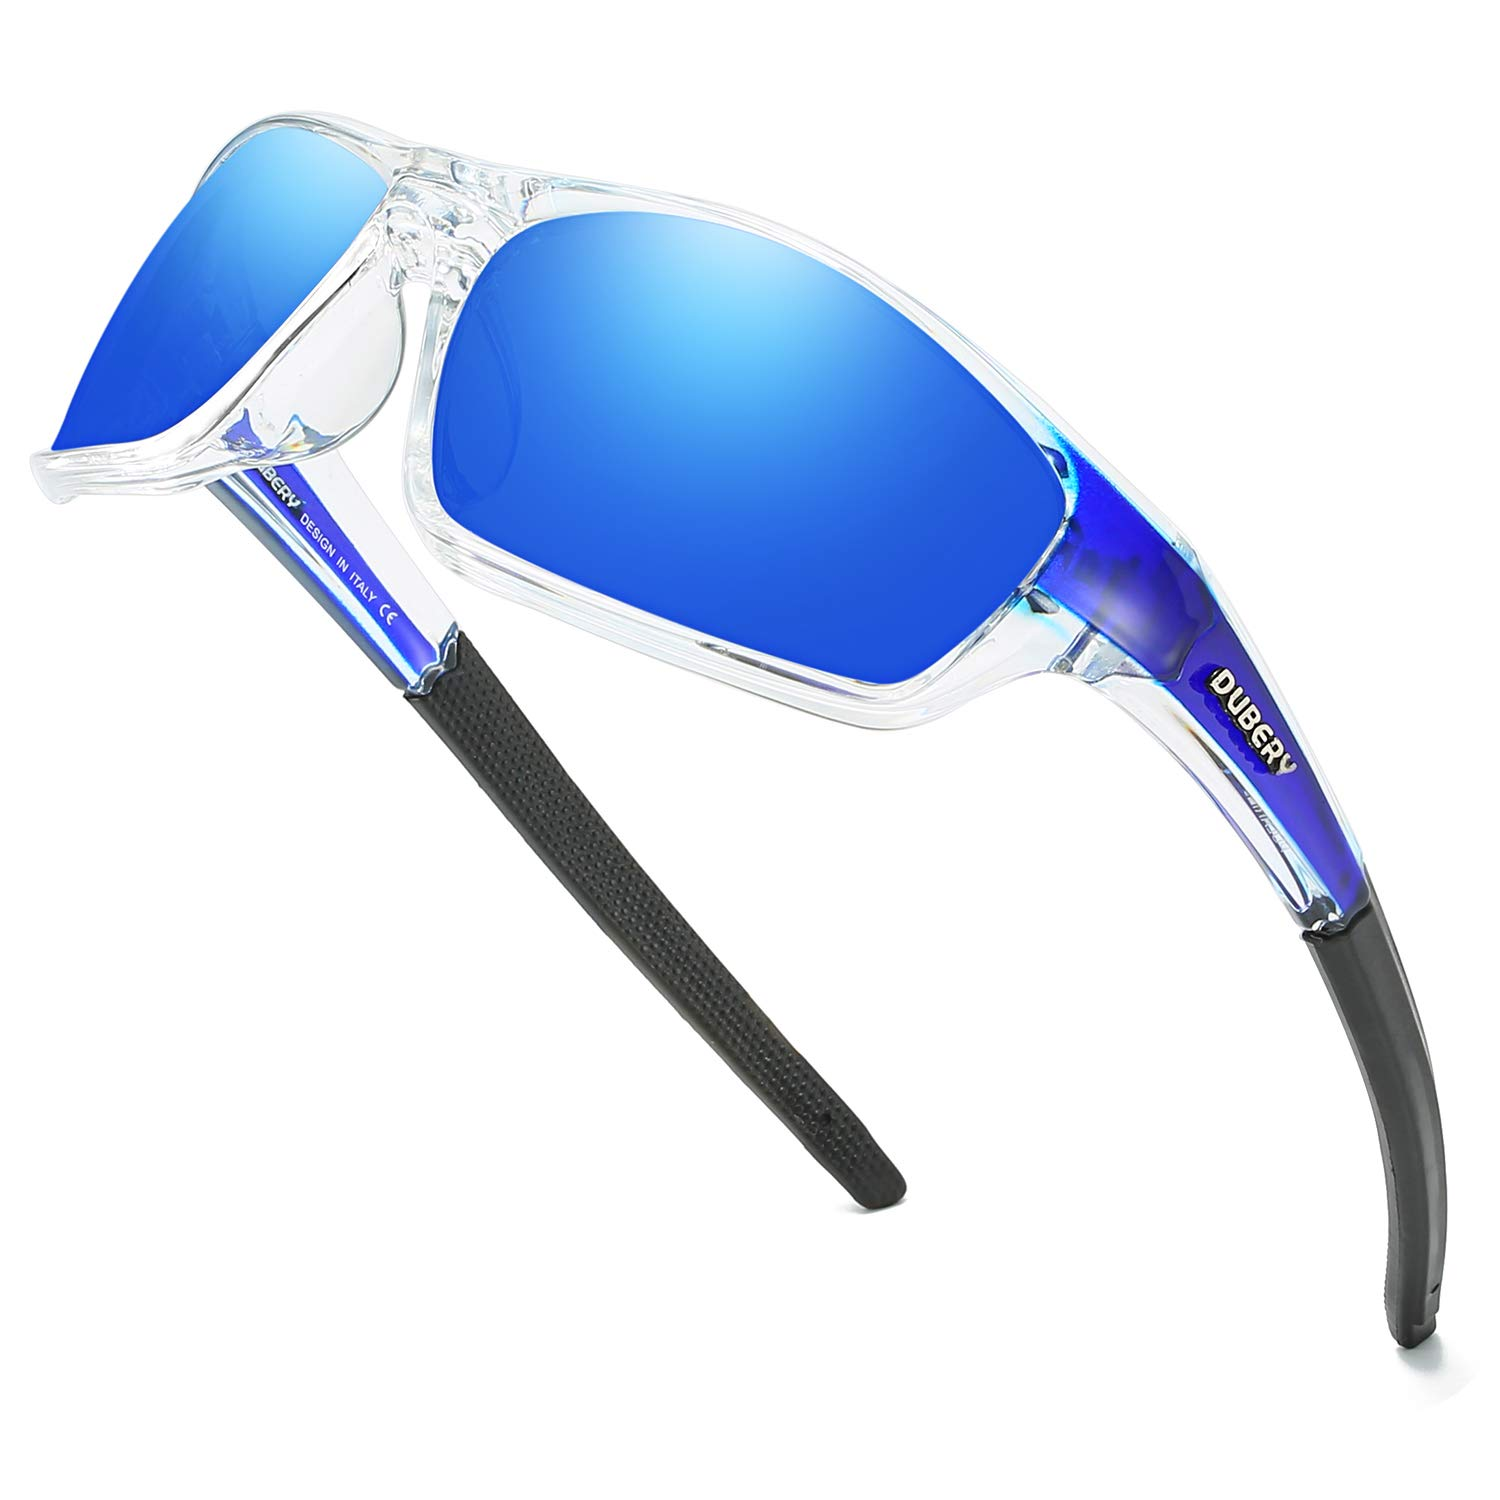 DUBERY Sport Polarized Sunglasses for Men UV Protection Driving Fishing Sun Glasses D620, Blue/Blue by DUBERY